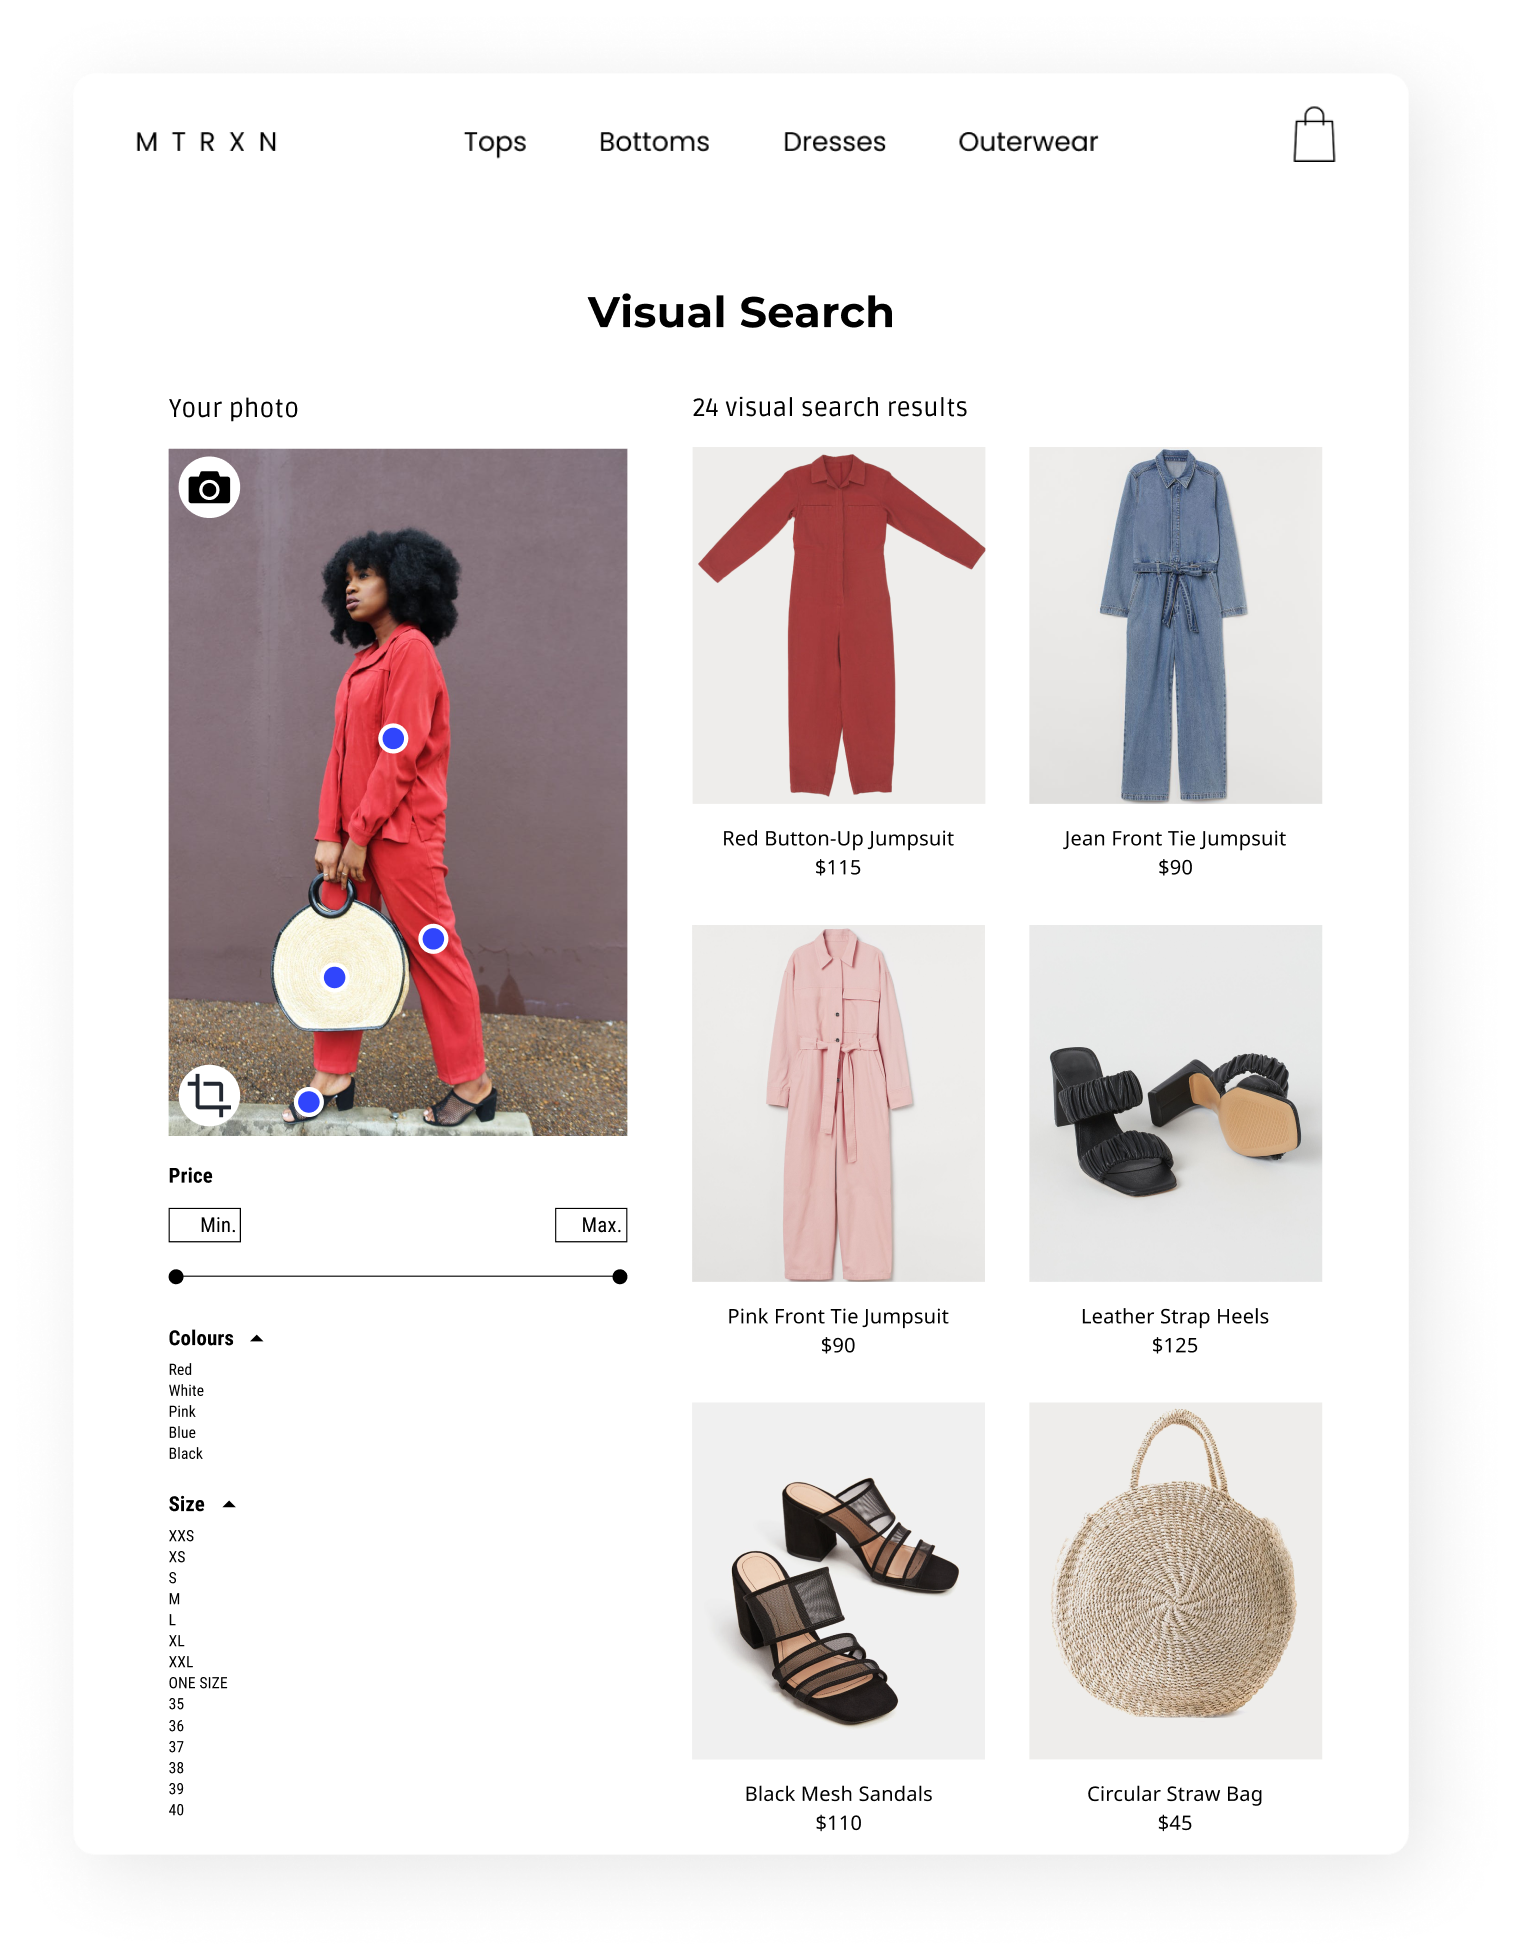 A screenshot of visual search. An image of a woman wearing a red jumpsuit, circular straw bag and black sandals. There are 24 visual search results with similar items.